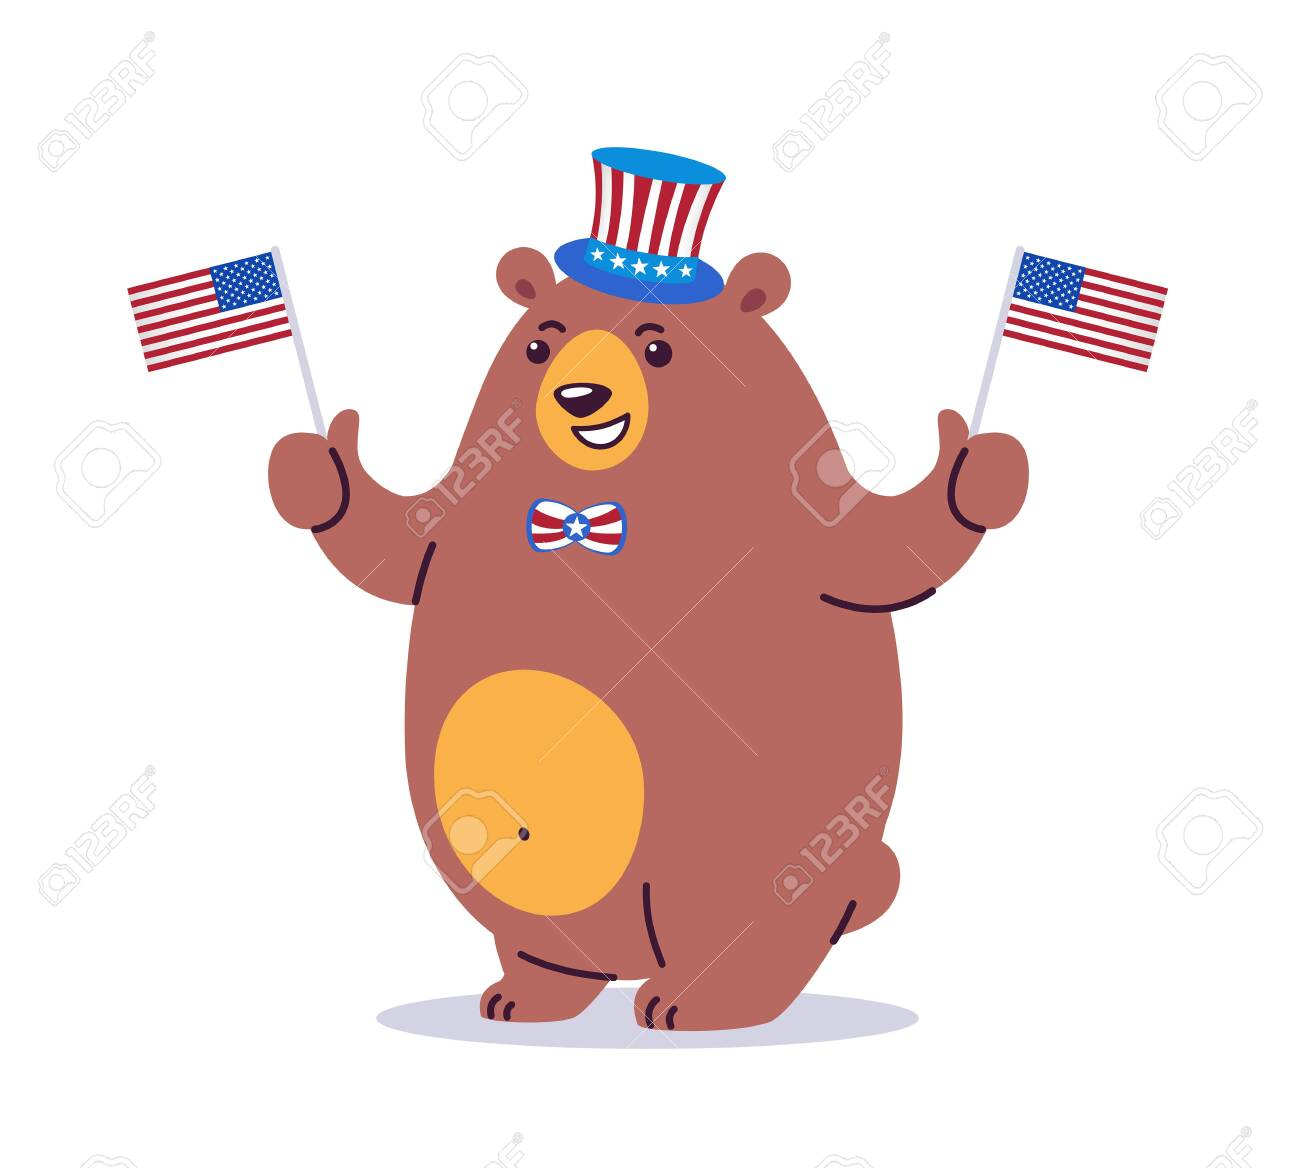 Cool cartoon vector illustration of a California state animal grizzly bear. The bear wearing patriotic cylinder hat and waving US flags. Holiday stars, stripes. Great graphic for California CA state - 147395591